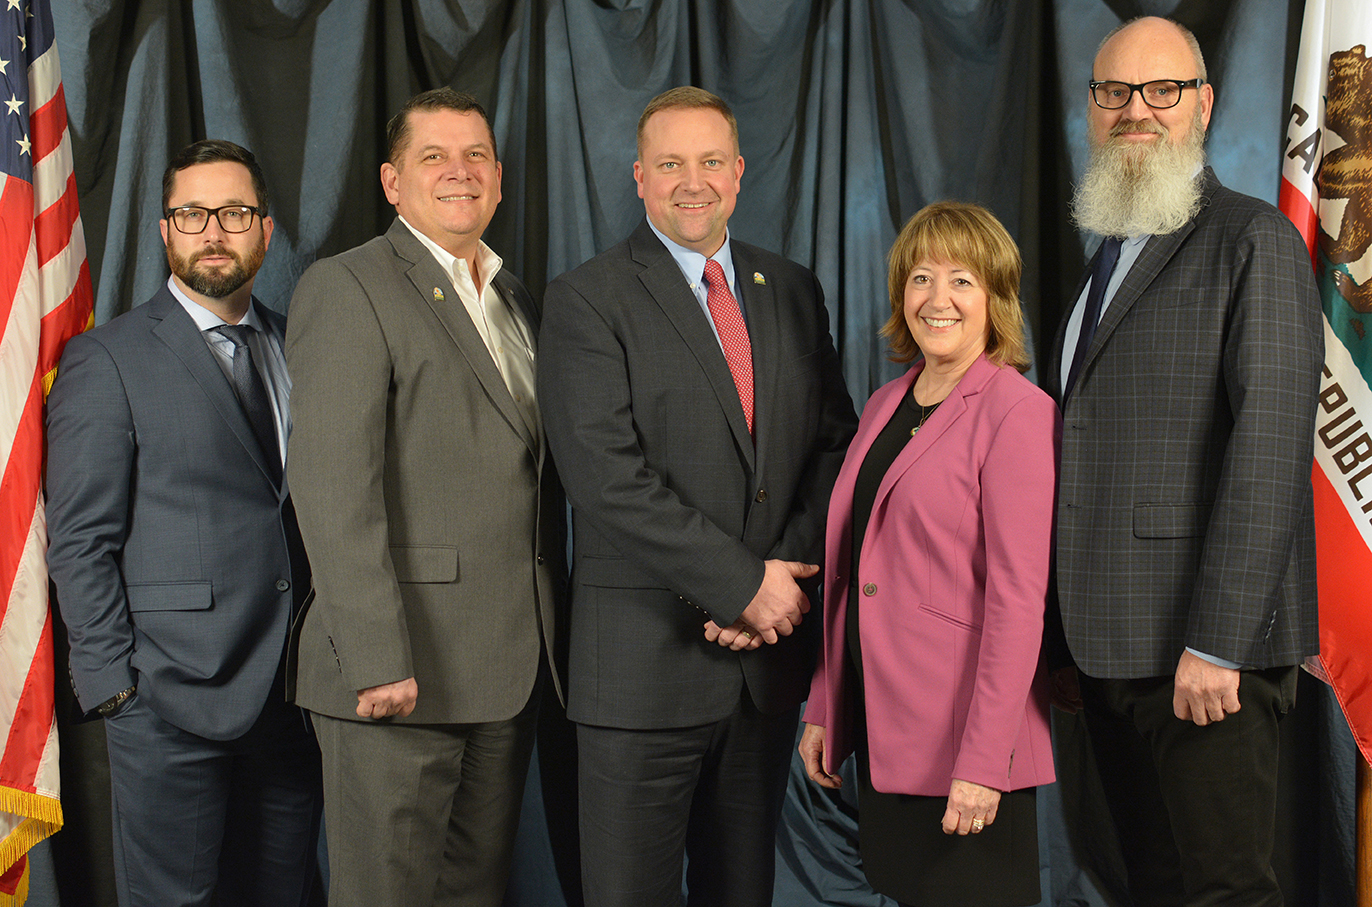 Vacaville City Council members, left to right, Nolan Sullivan, Mitch Mashburn, Mayor Ron Rowlett, Dilenna Harris, Raymond Beaty ,